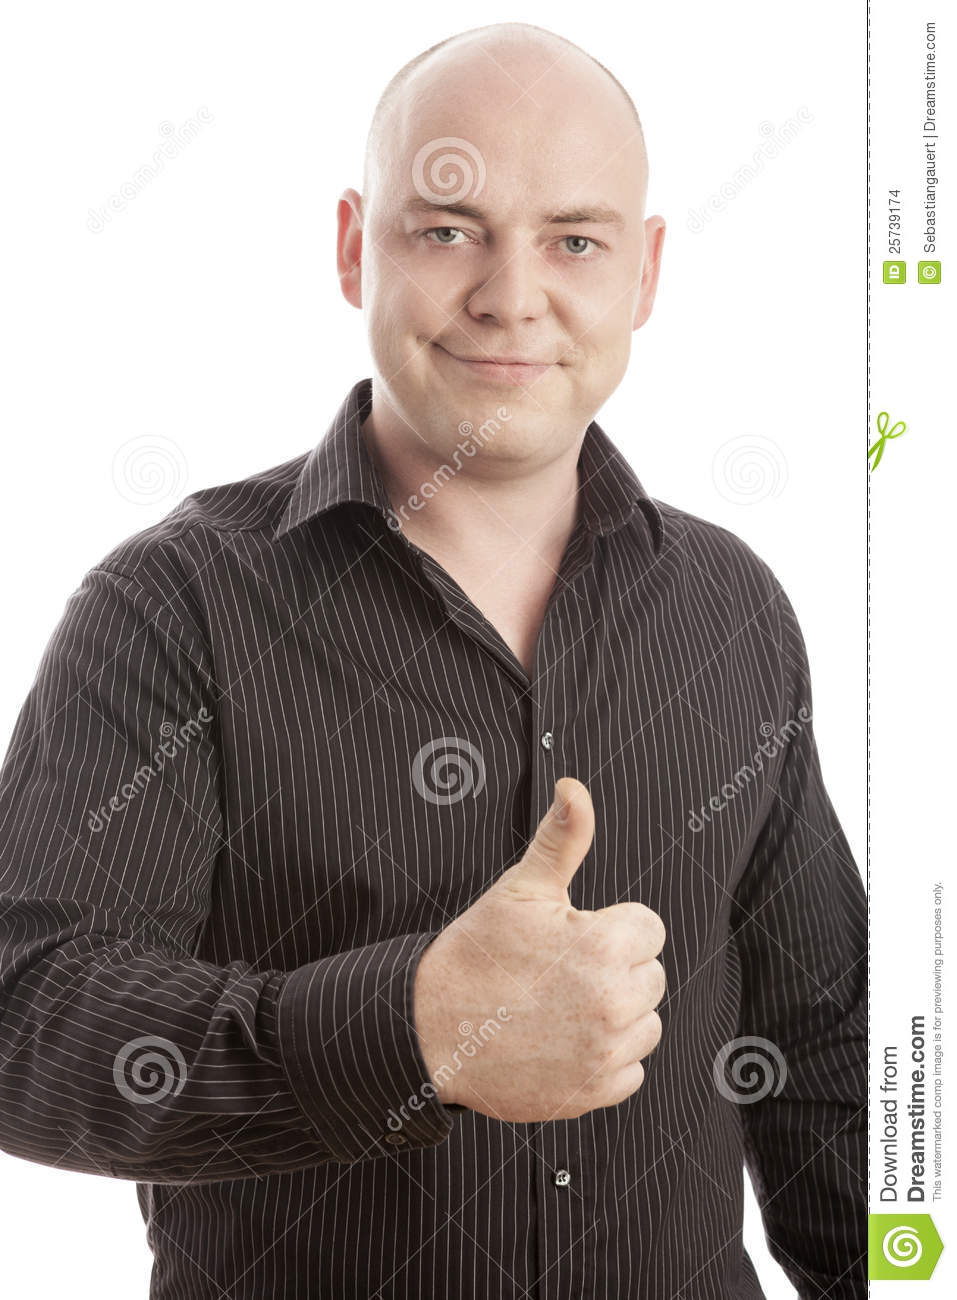 Bald man with shirt thumb up and smiling